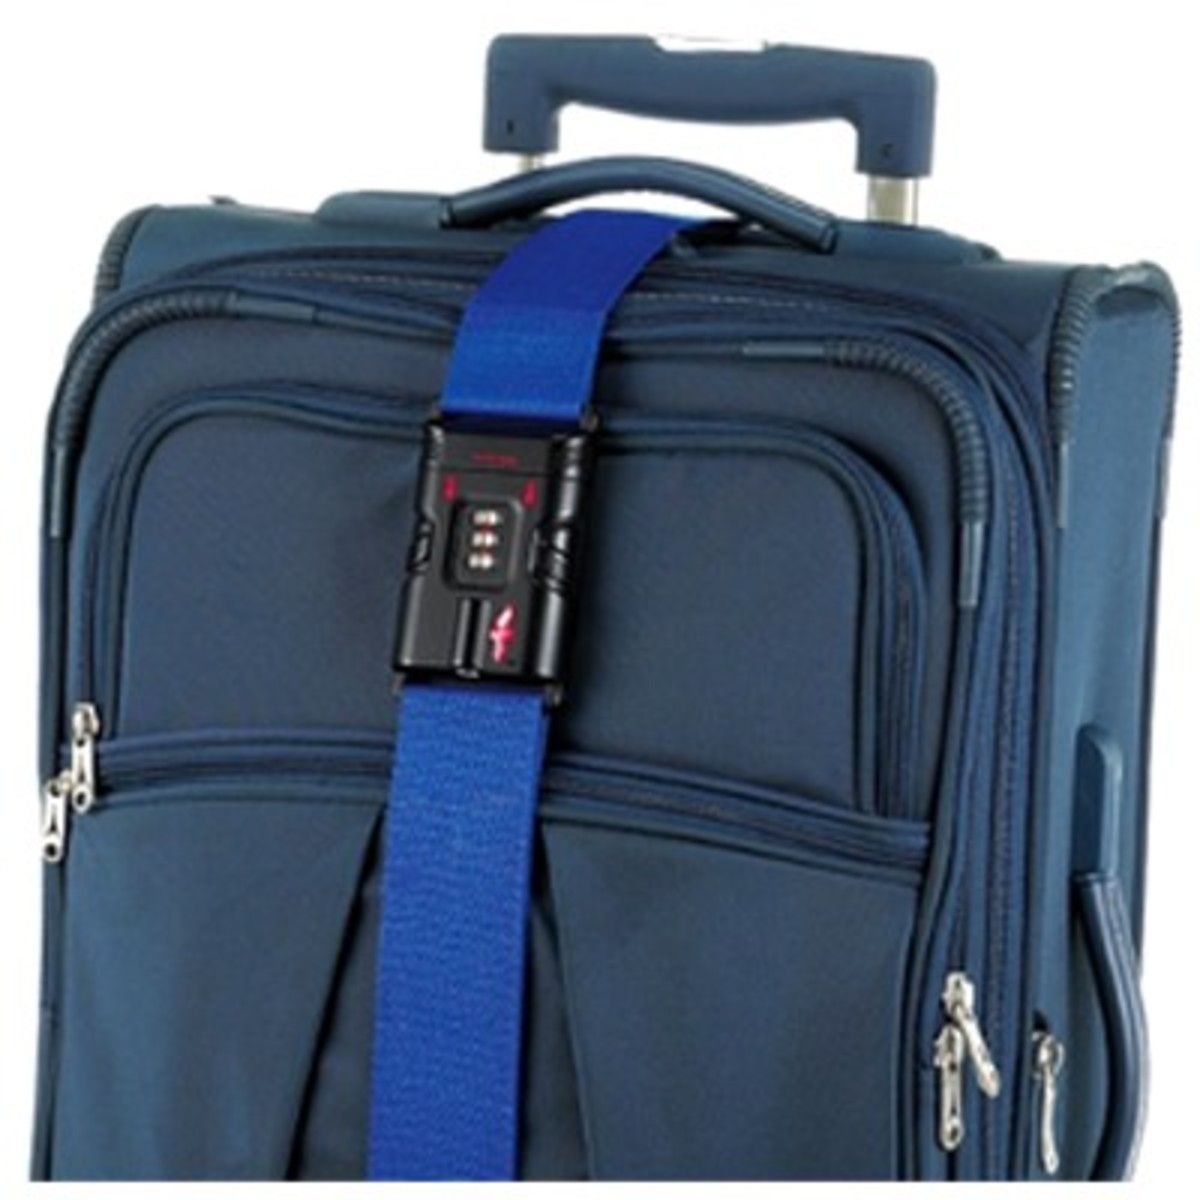 Luggage straps to secure bags